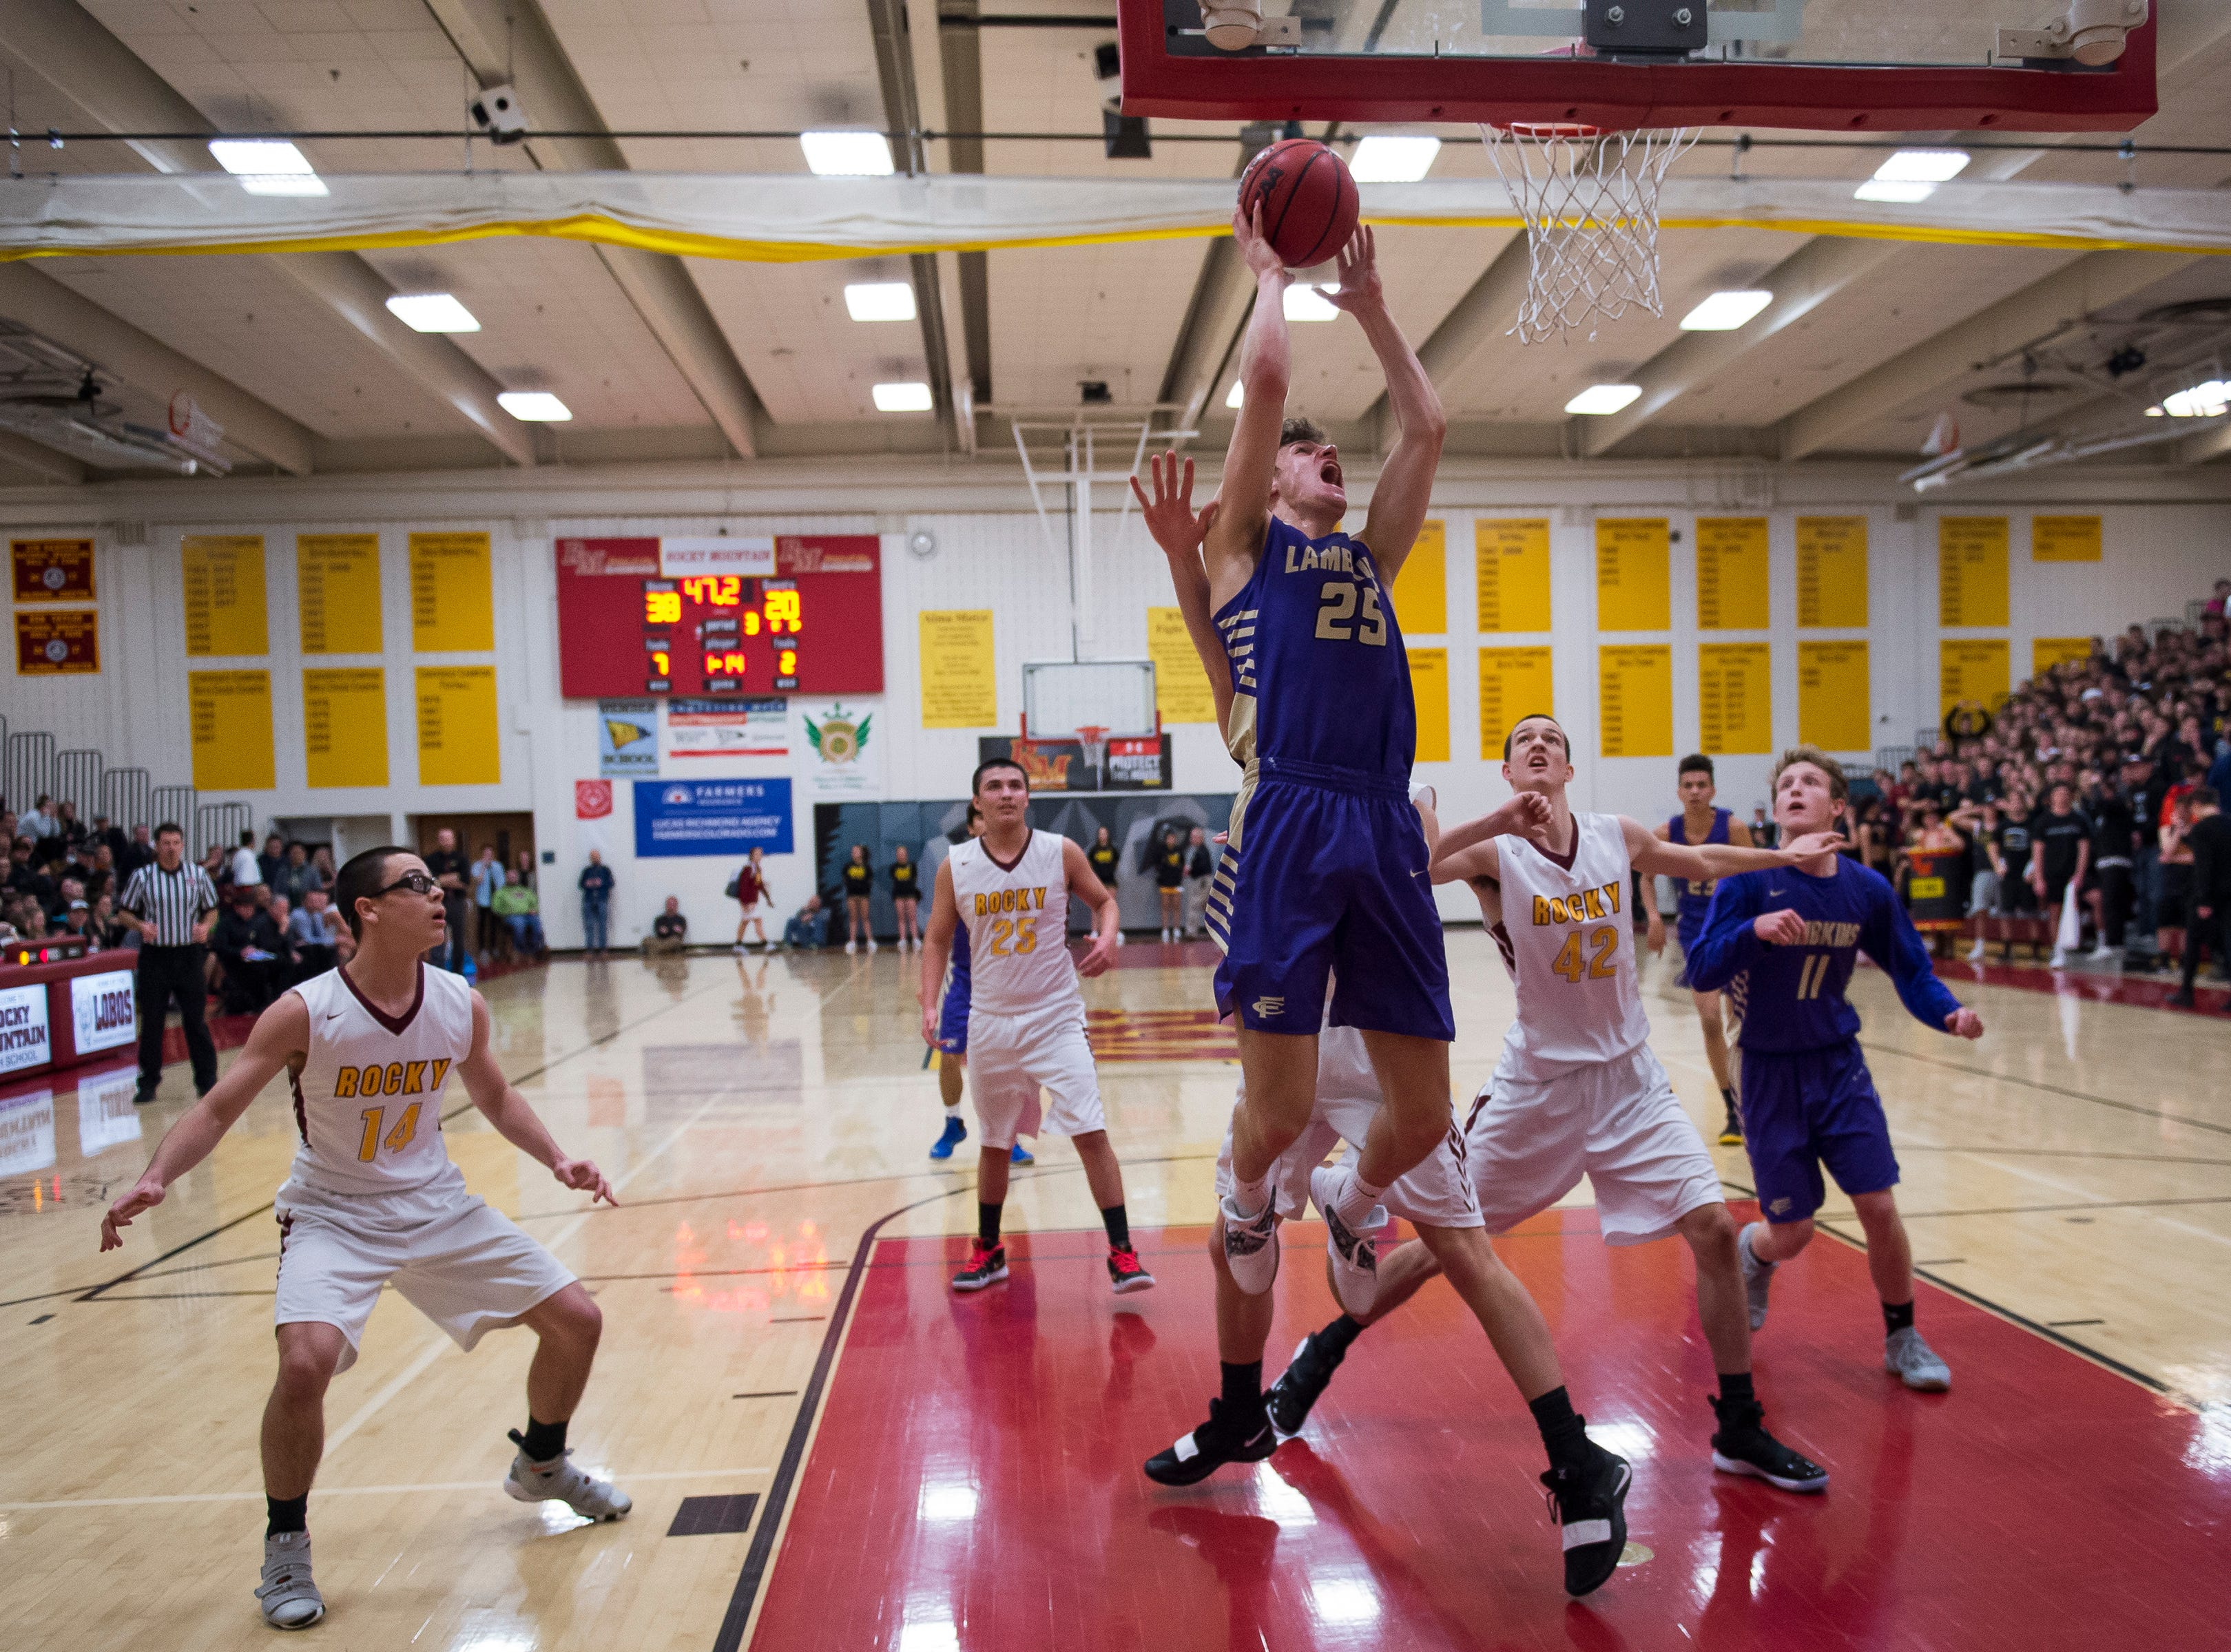 Fort Collins High School senior Benny Khouri (25) attempts a shot during a game against Rocky Mountain High School on Friday, Jan. 18, 2019, at Rocky Mountain High School in Fort Collins, Colo.